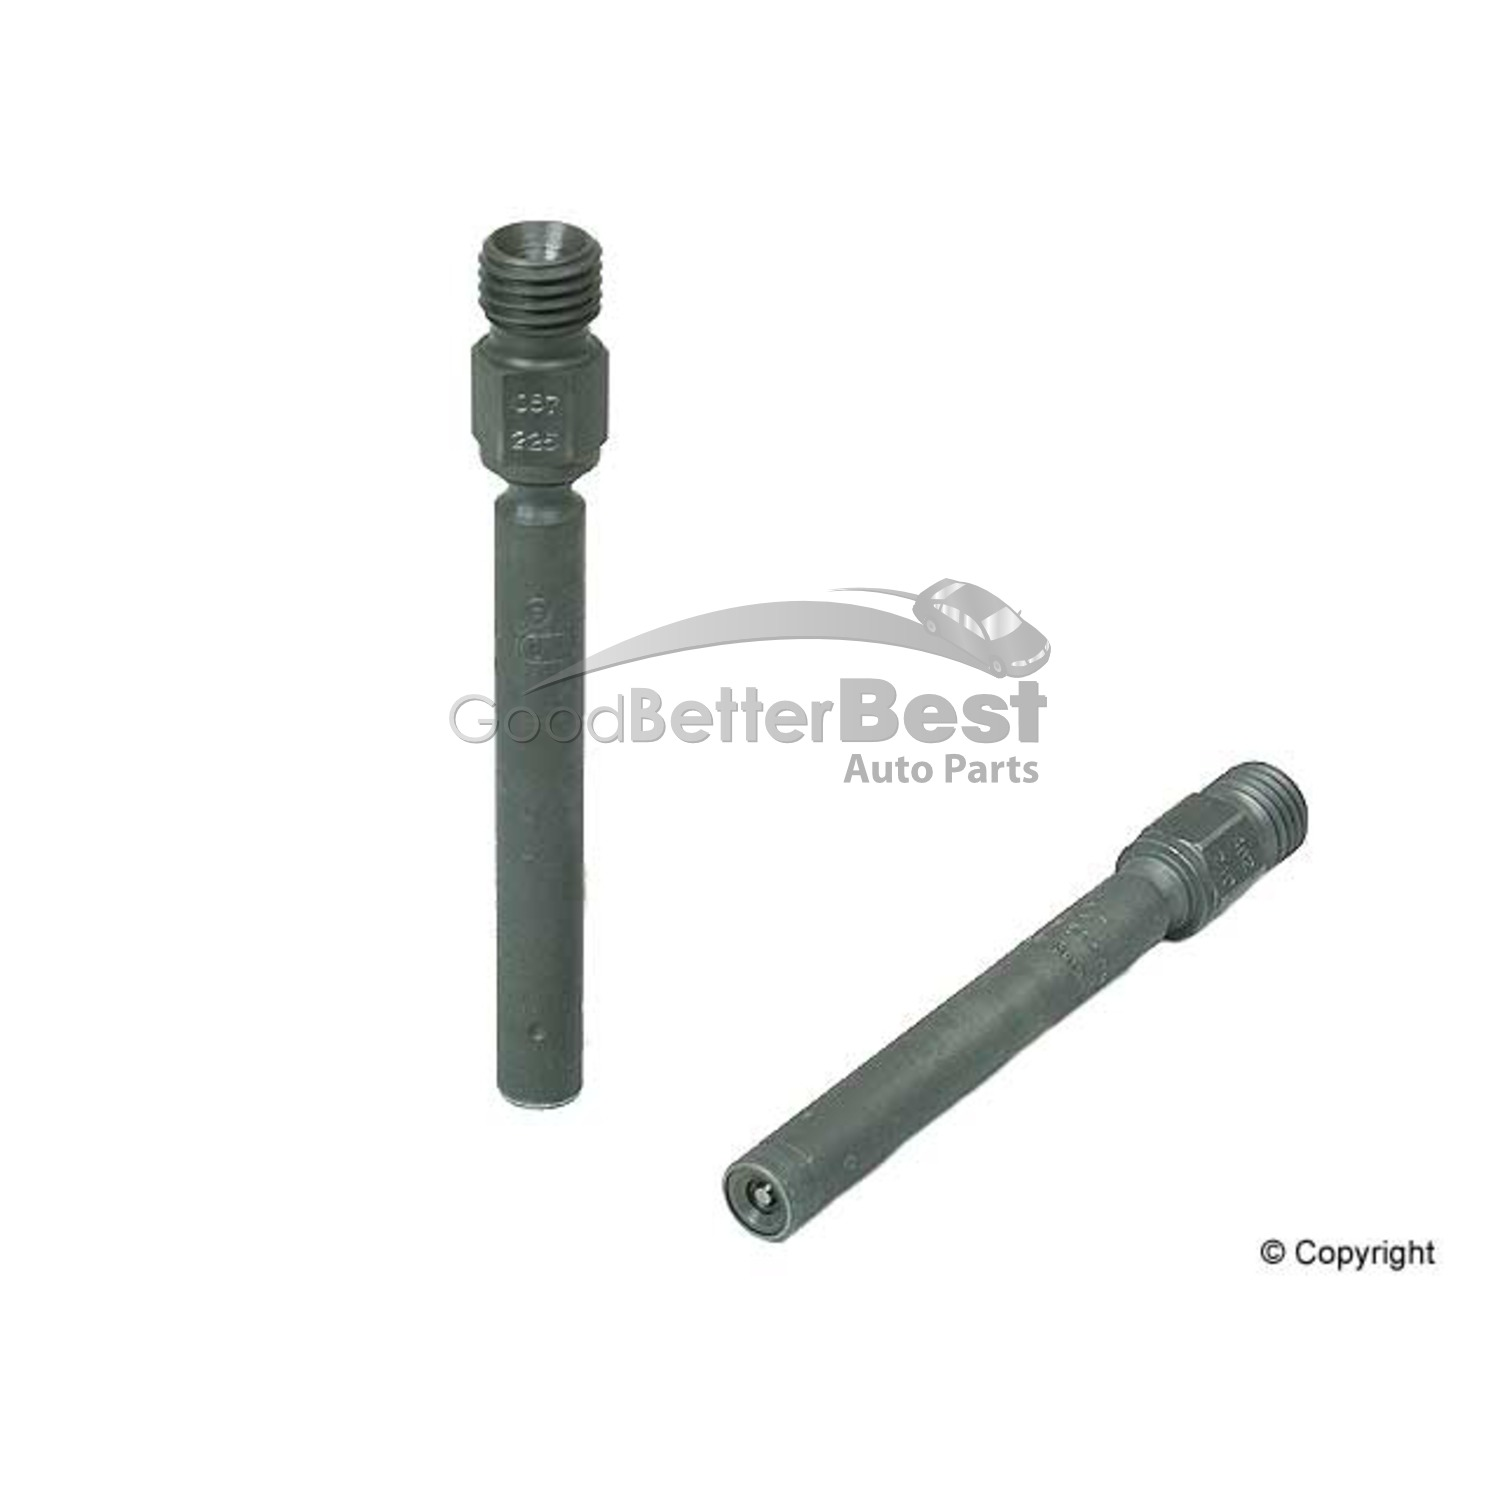 OEM BOSCH 1 Single Gas Engine Fuel Injector Nozzle for Porsche 928 for Saab 900